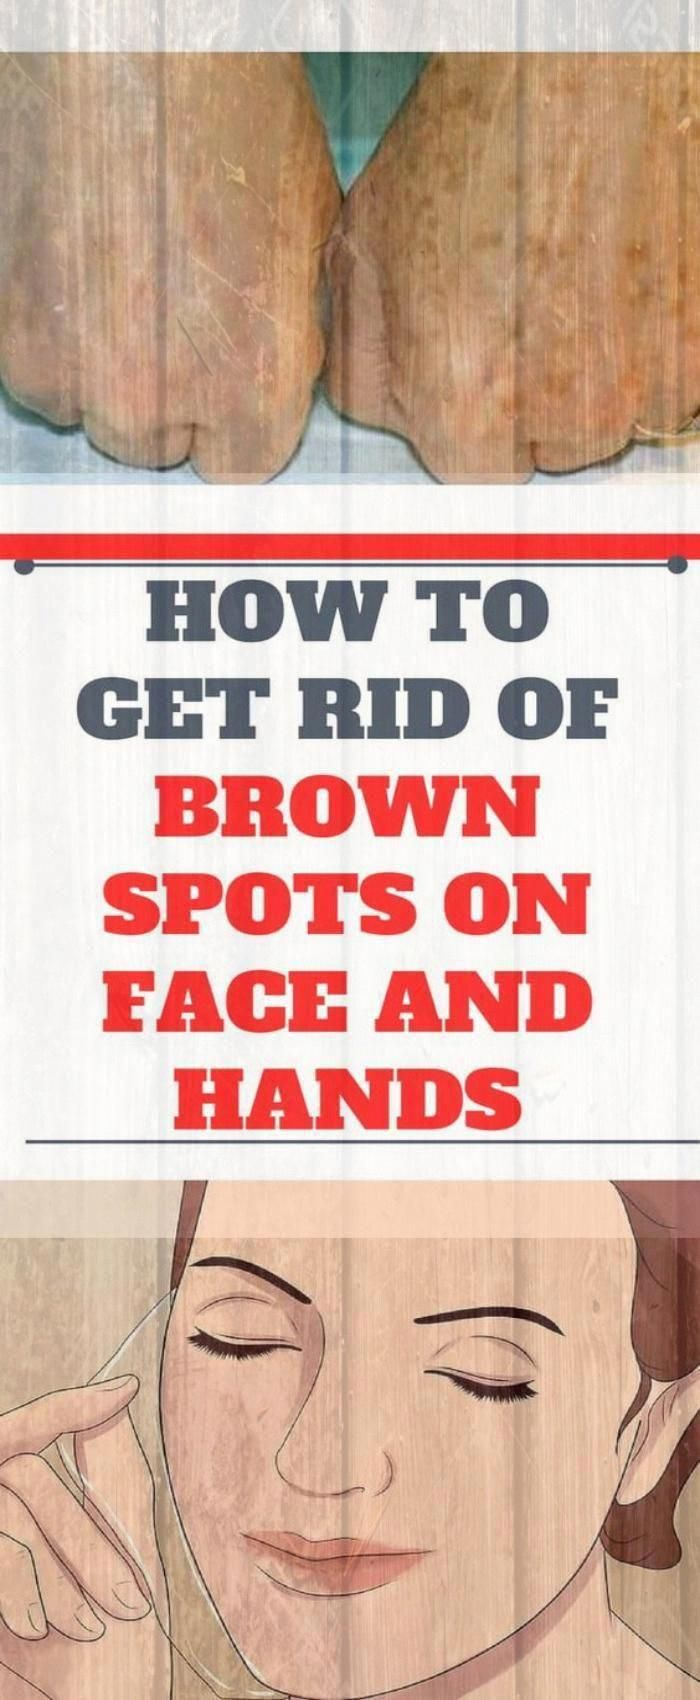 How To Get Rid Of Hands Brown Spots#health #fitness #spots #CanBrownSpotsBeRemoved #BestForBrownSpot...